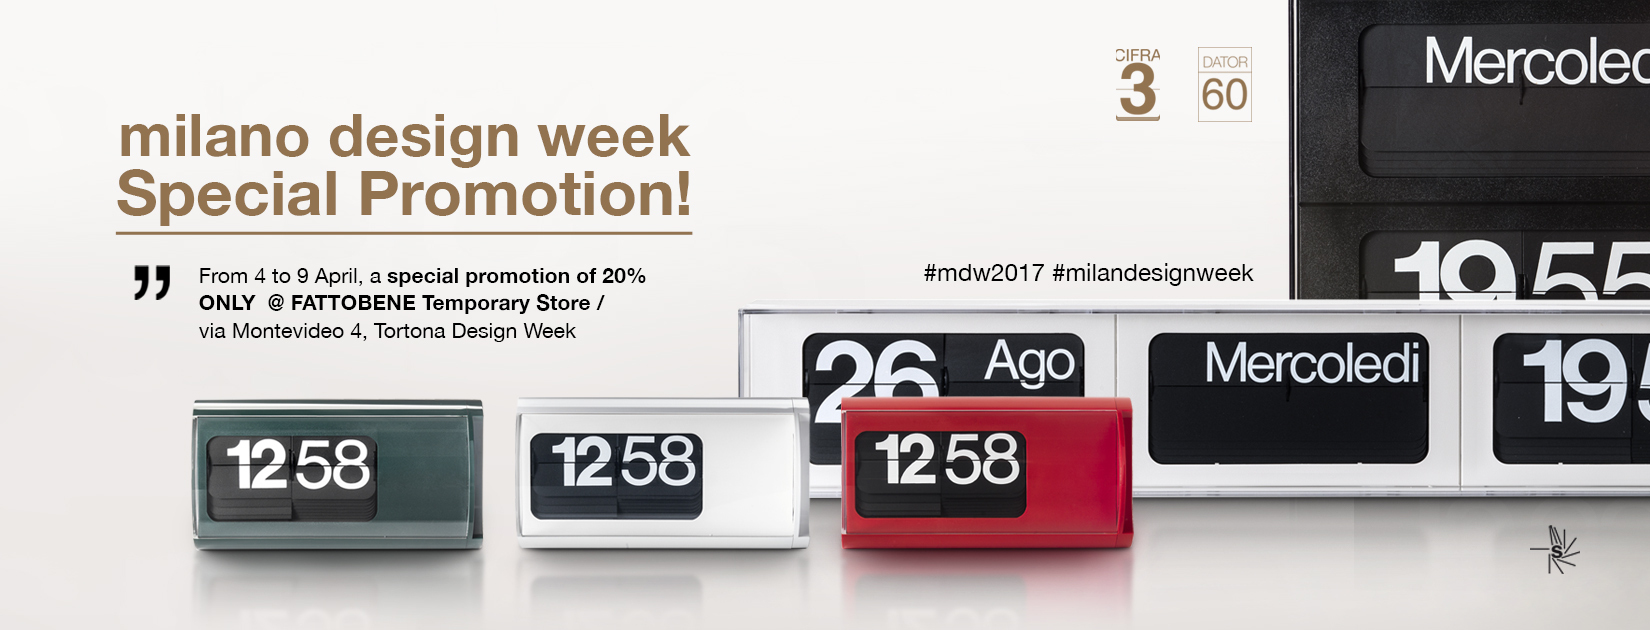 Milano Design Week SpecialPromotion